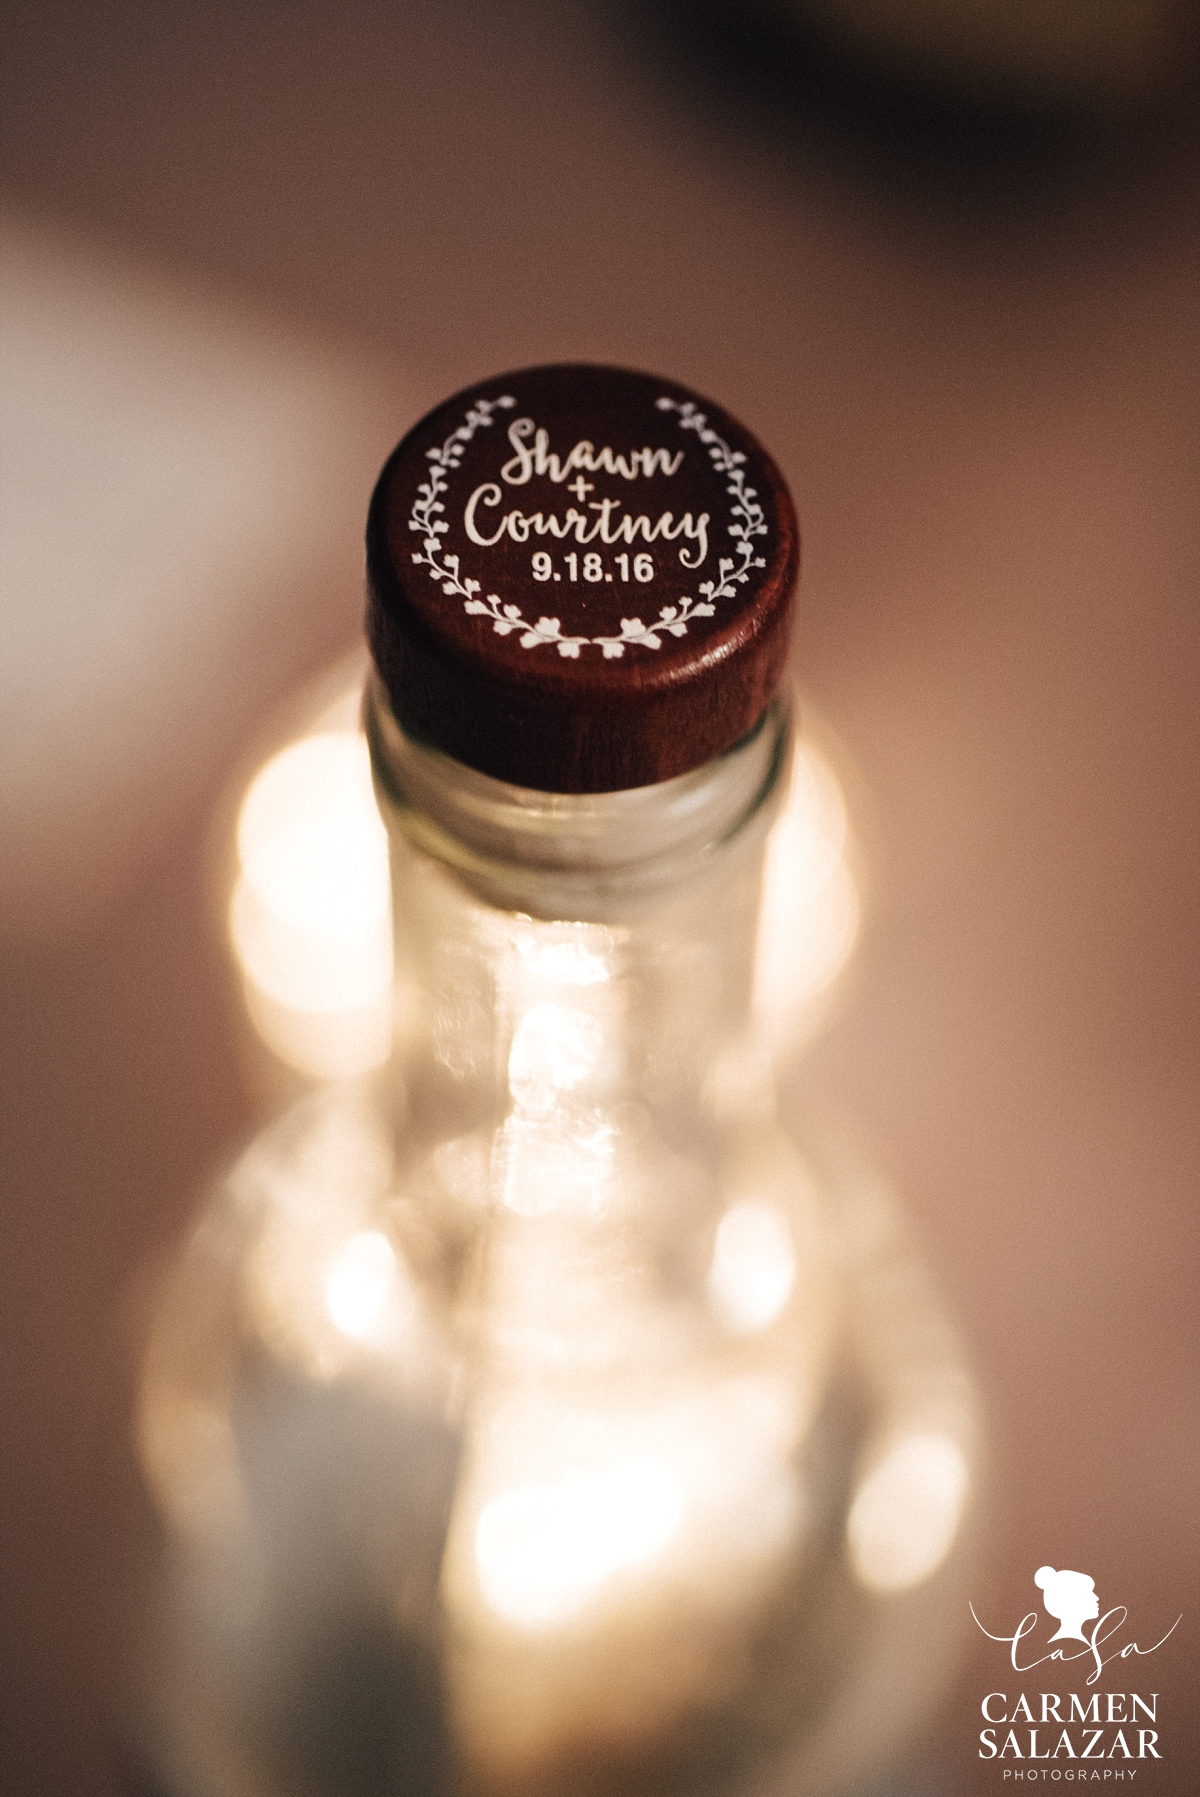 Personalized wedding wine topper favors - Carmen Salazar